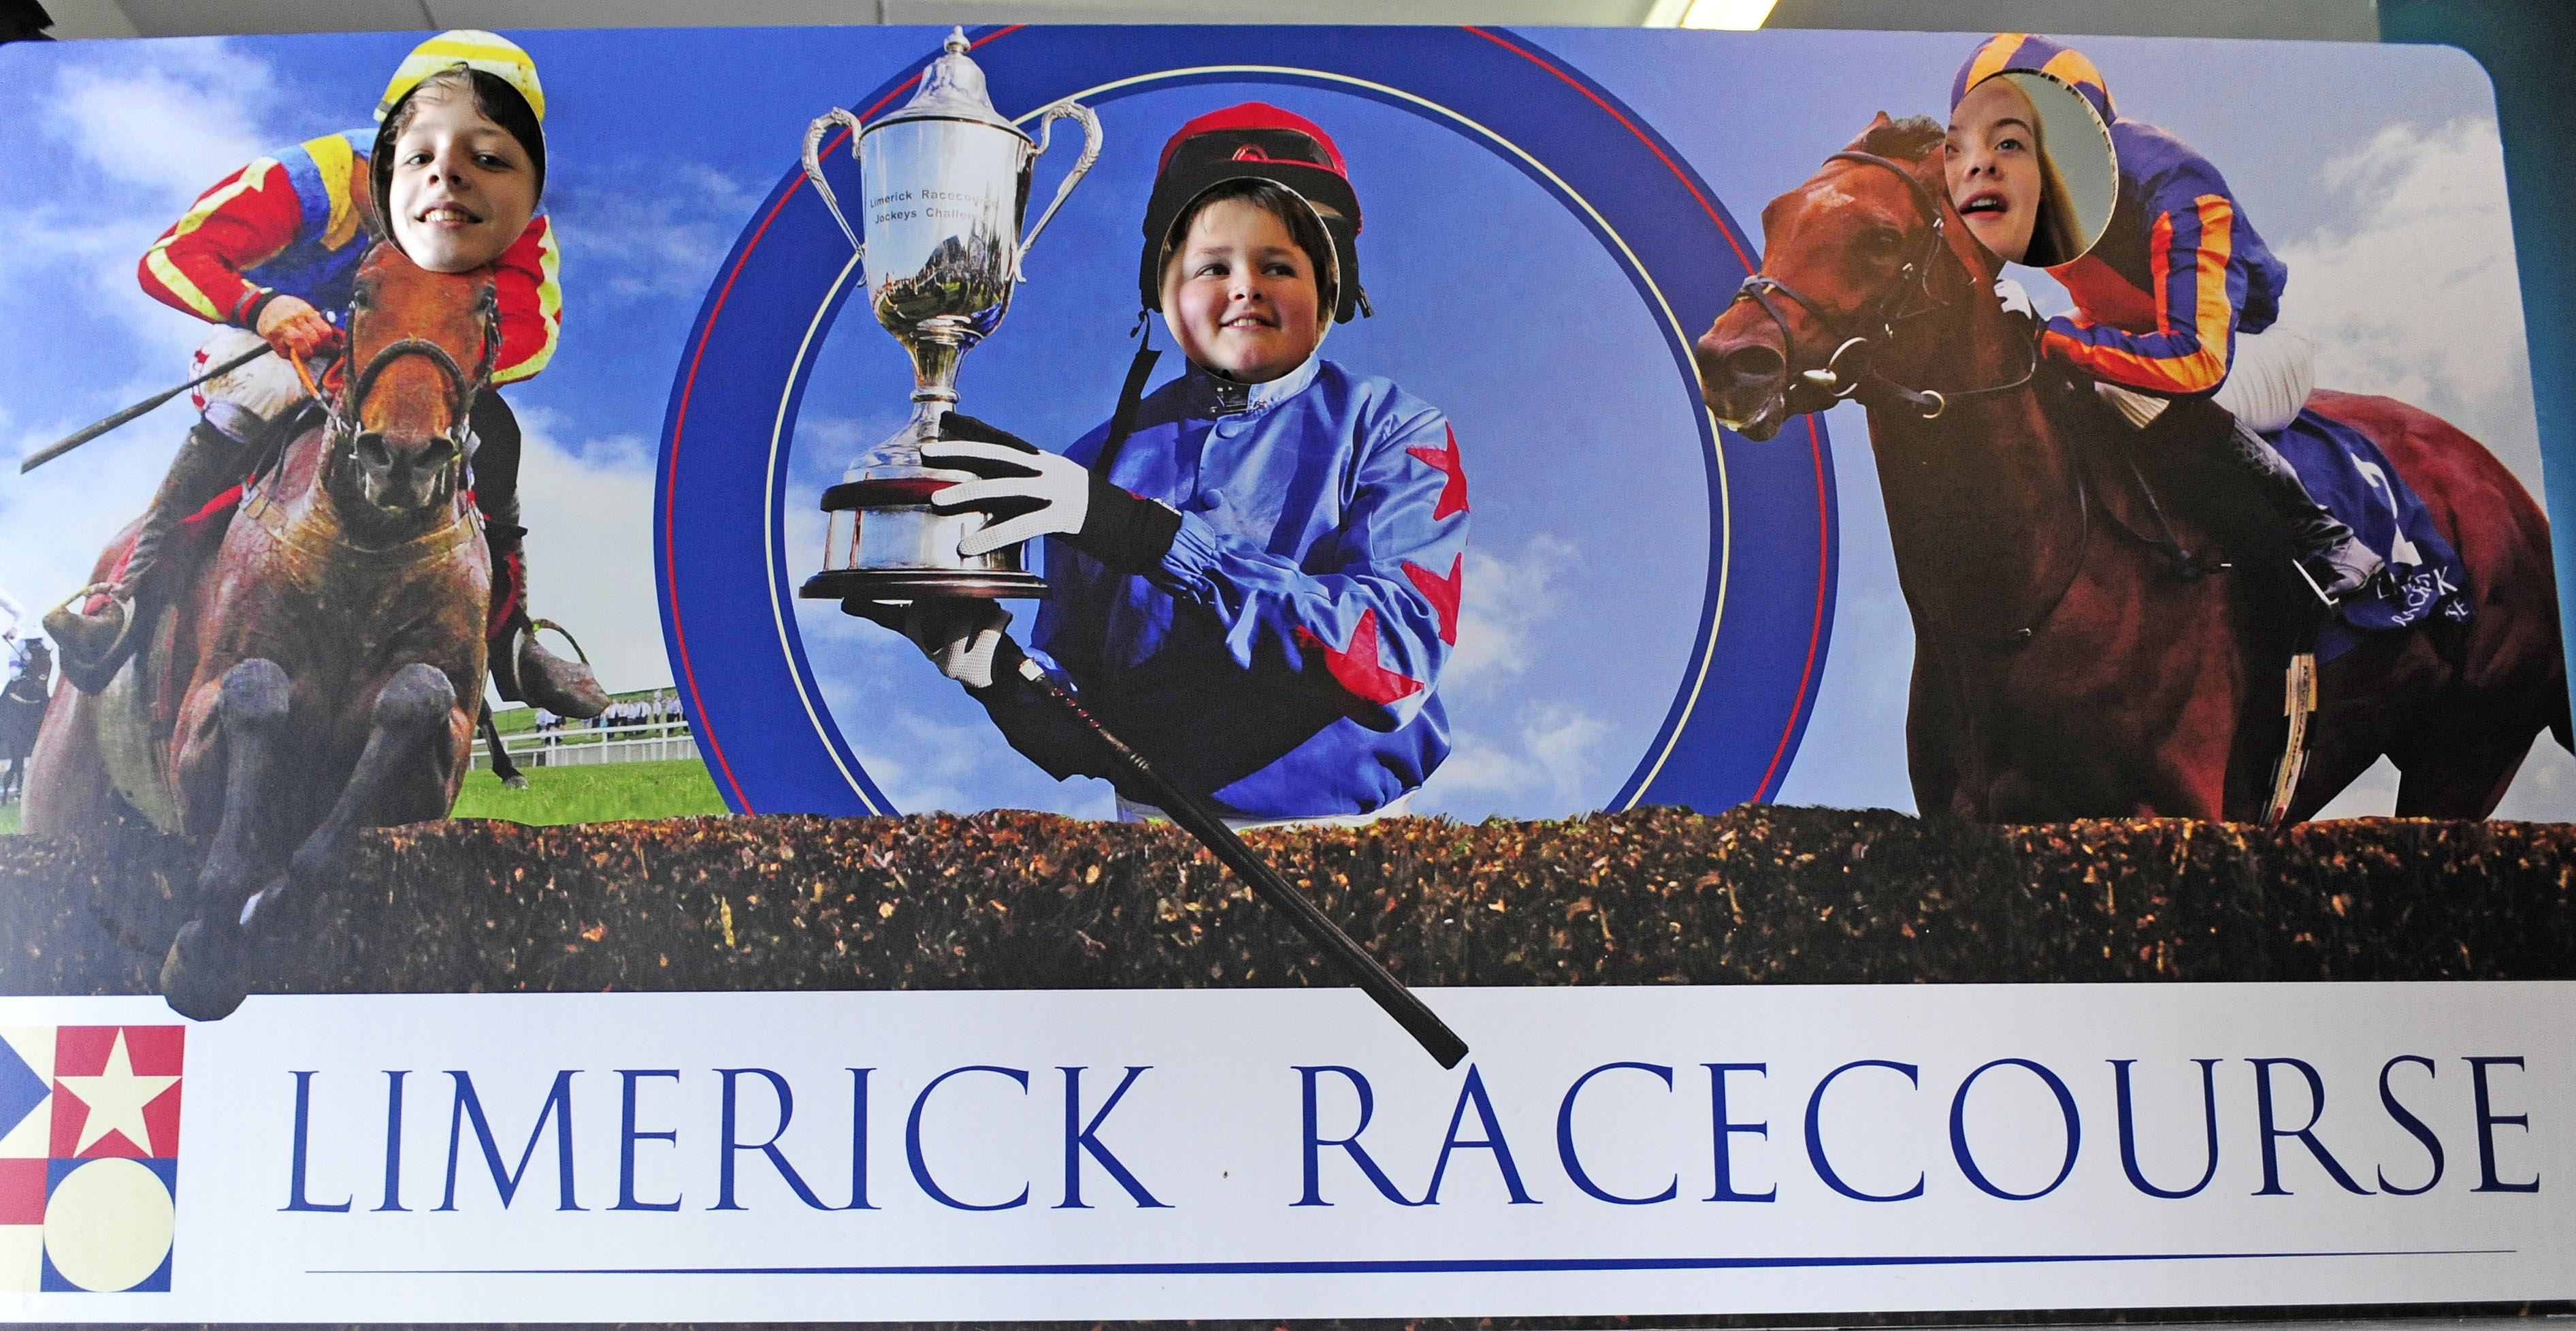 LIMERICK RACECOURSE 3-3-2015. HRI KIDS GO RACING DAY.SCHOOL KIDS AT THE GO RACING DISPLAY.PHOTO HEALY RACING.